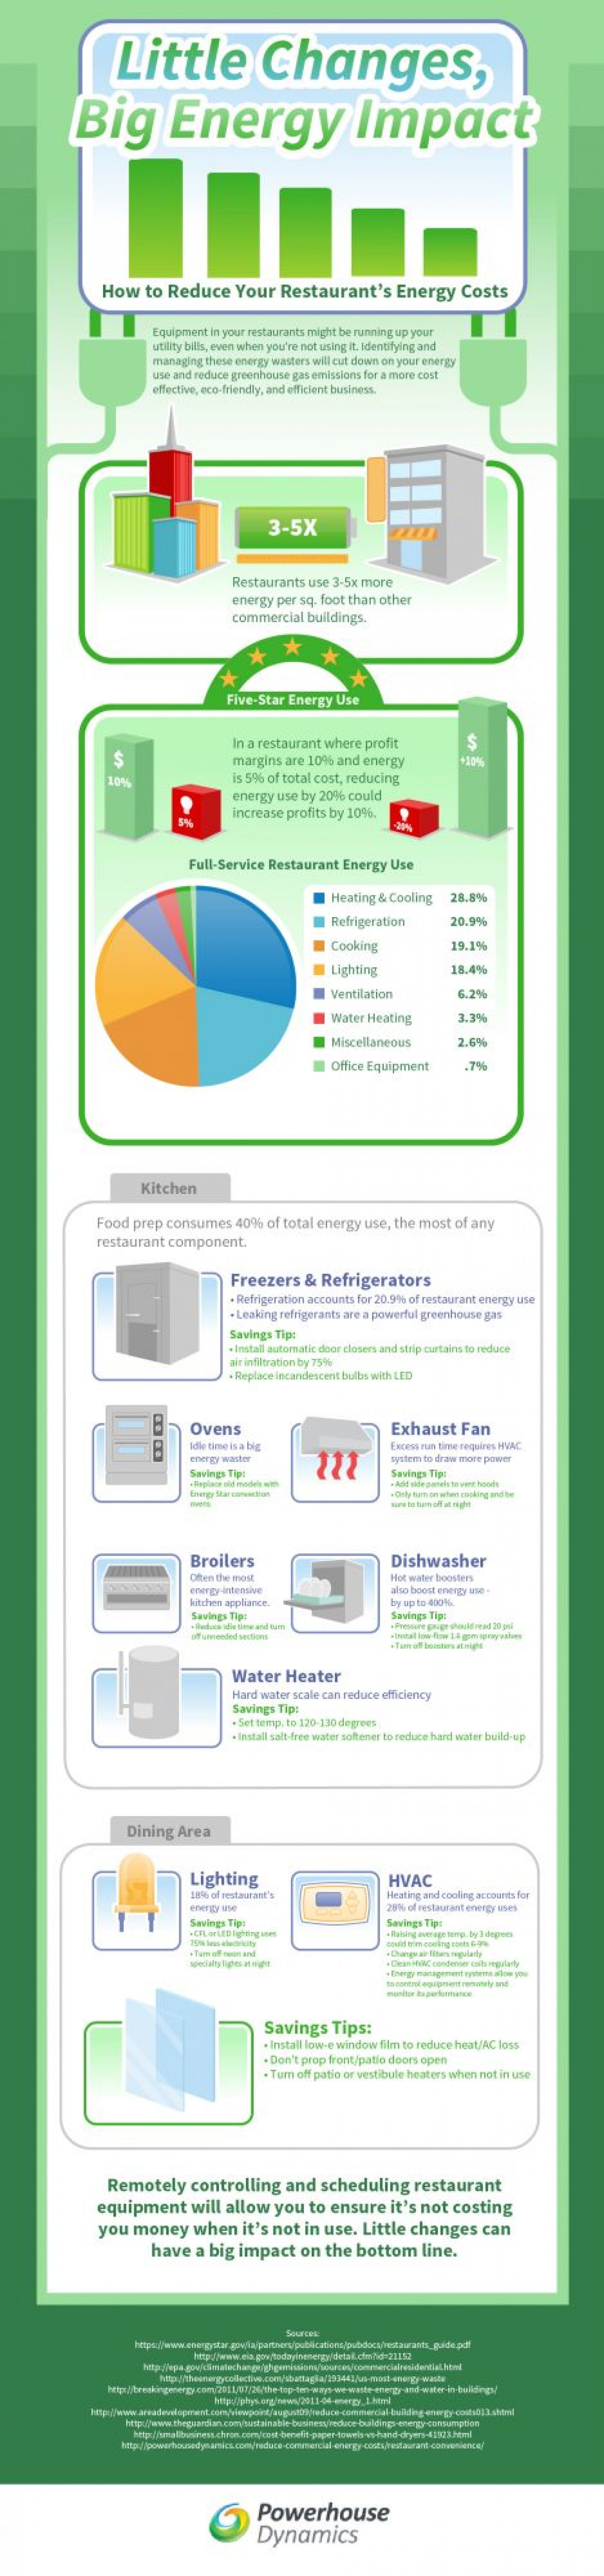 How to Reduce Your Restaurant's Energy Costs Infographic